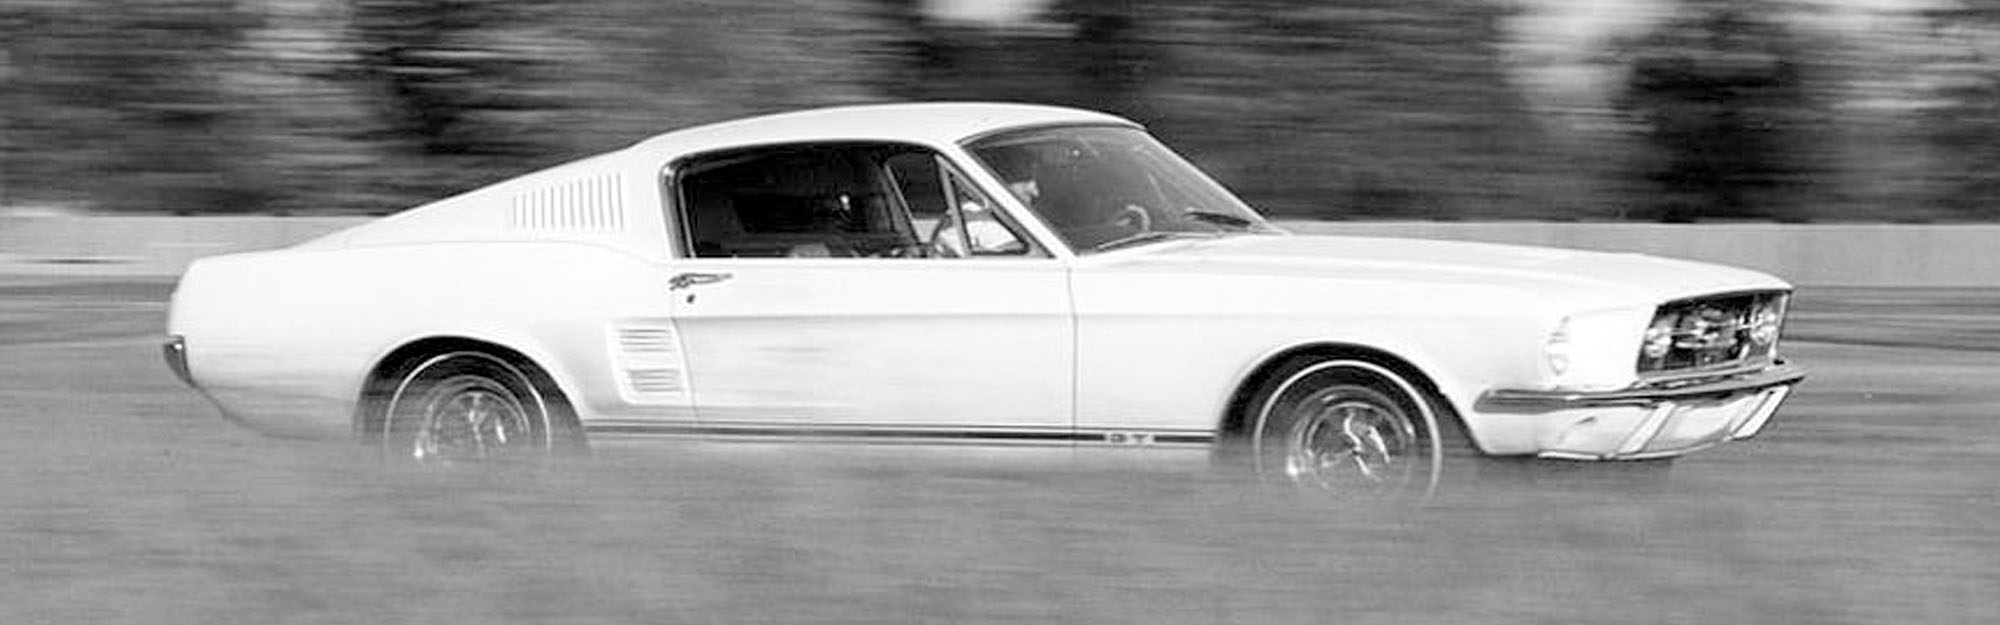 Mustang Fastback GTA 1967 wit